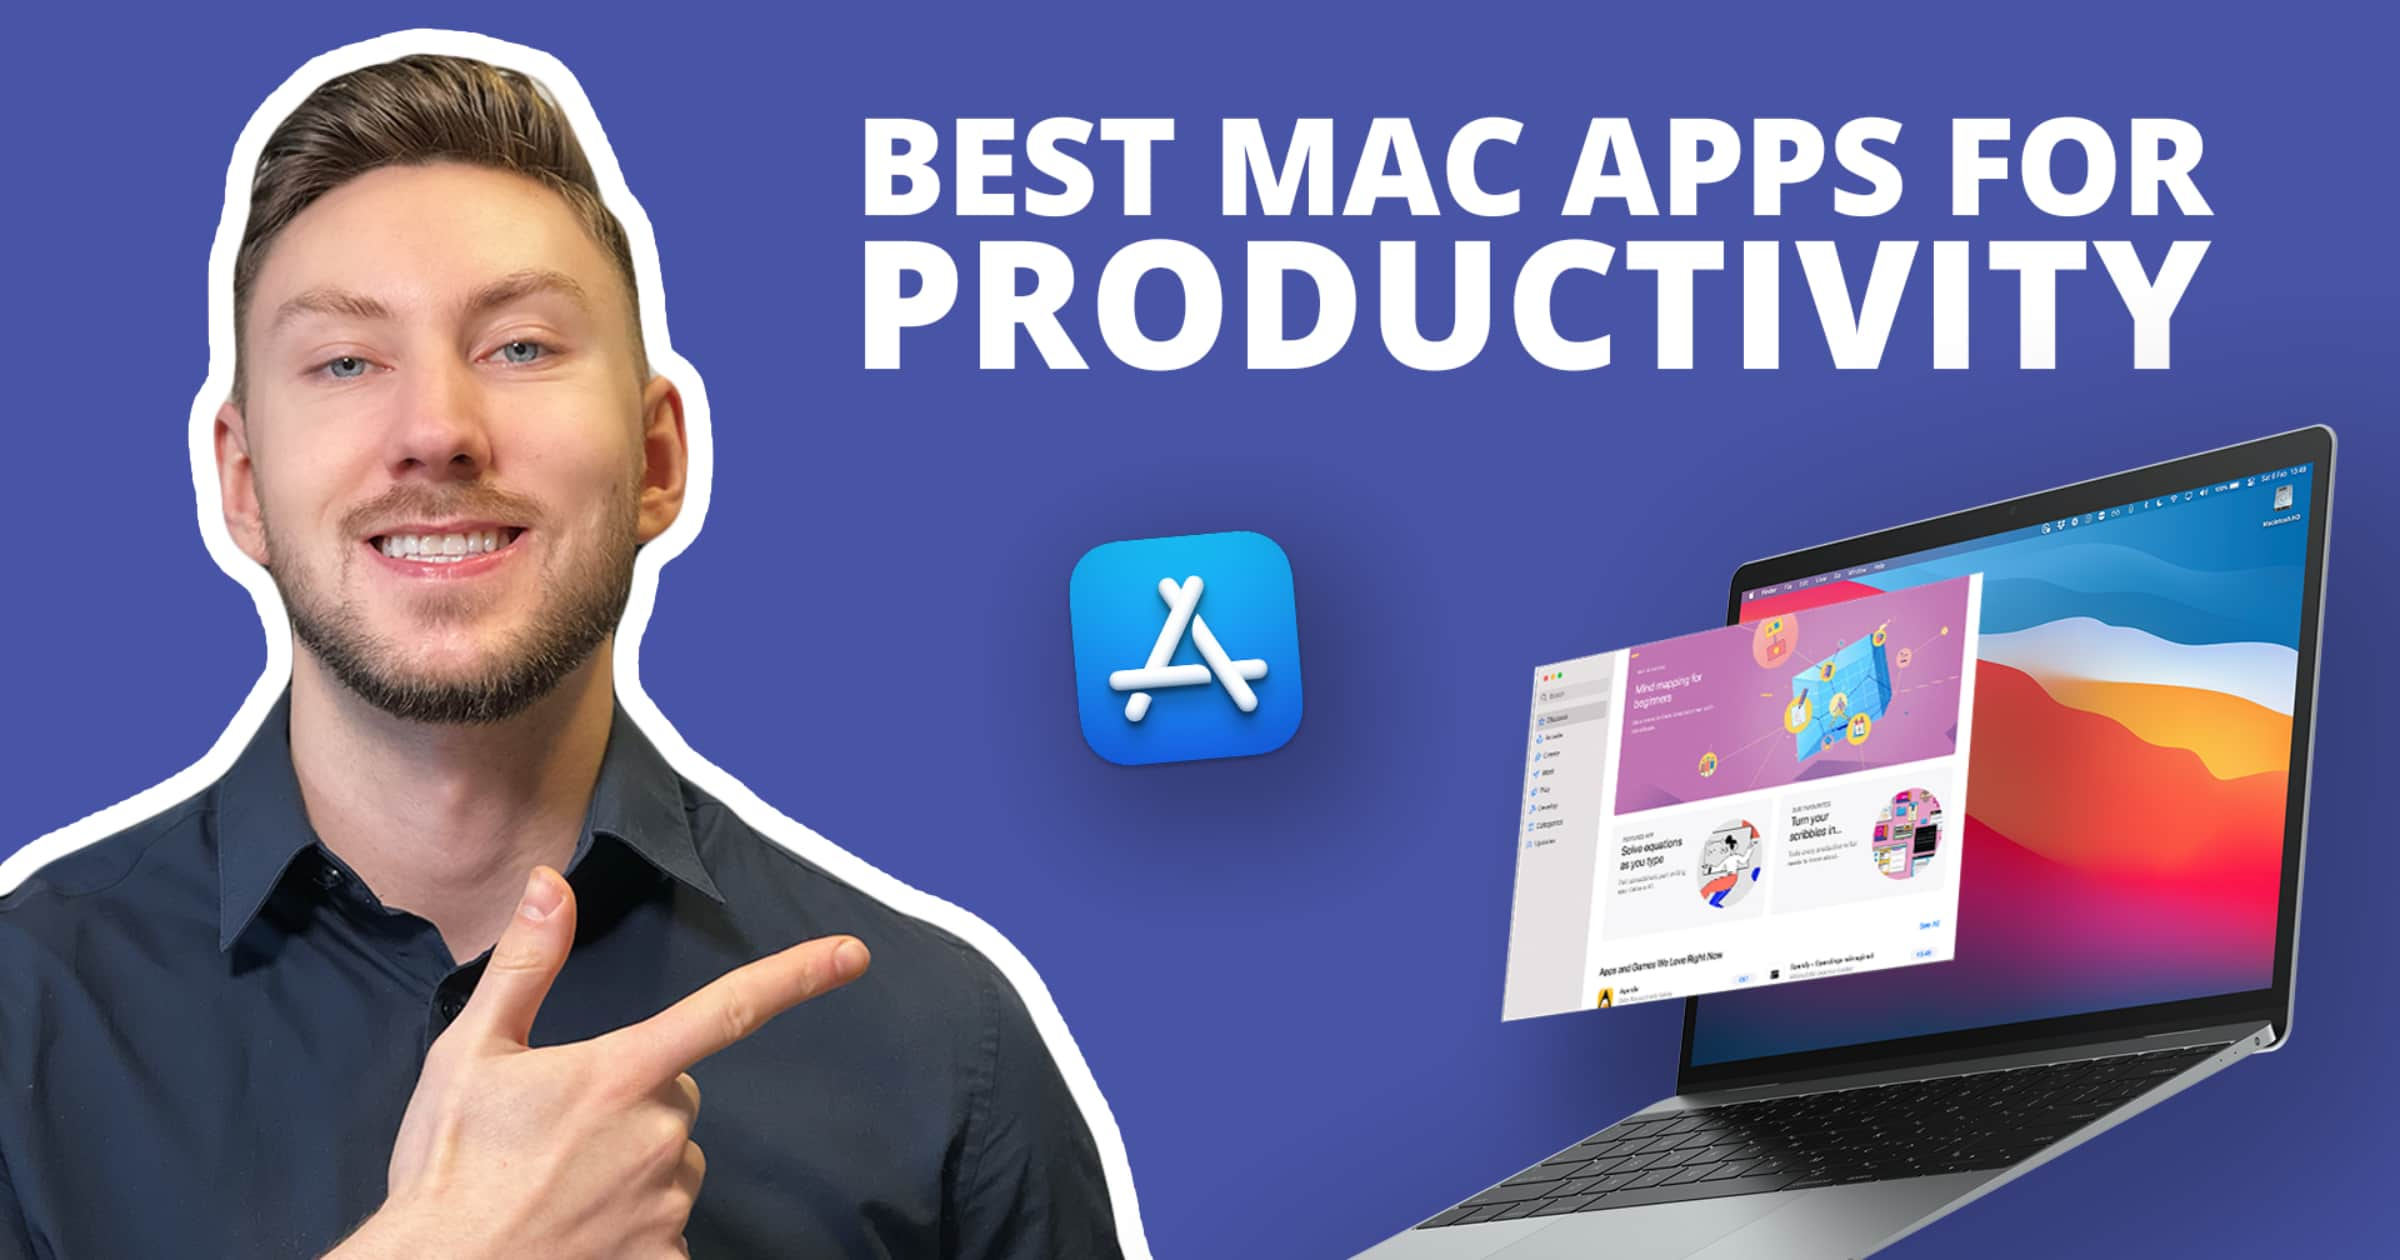 A photo of Aidan Quigley with his finger pointing to a graphic that reads Best Mac Apps For Productivity above a MacBook Pro with the Mac App Store floating above it to promote the 7 free mac apps for productivity he uses